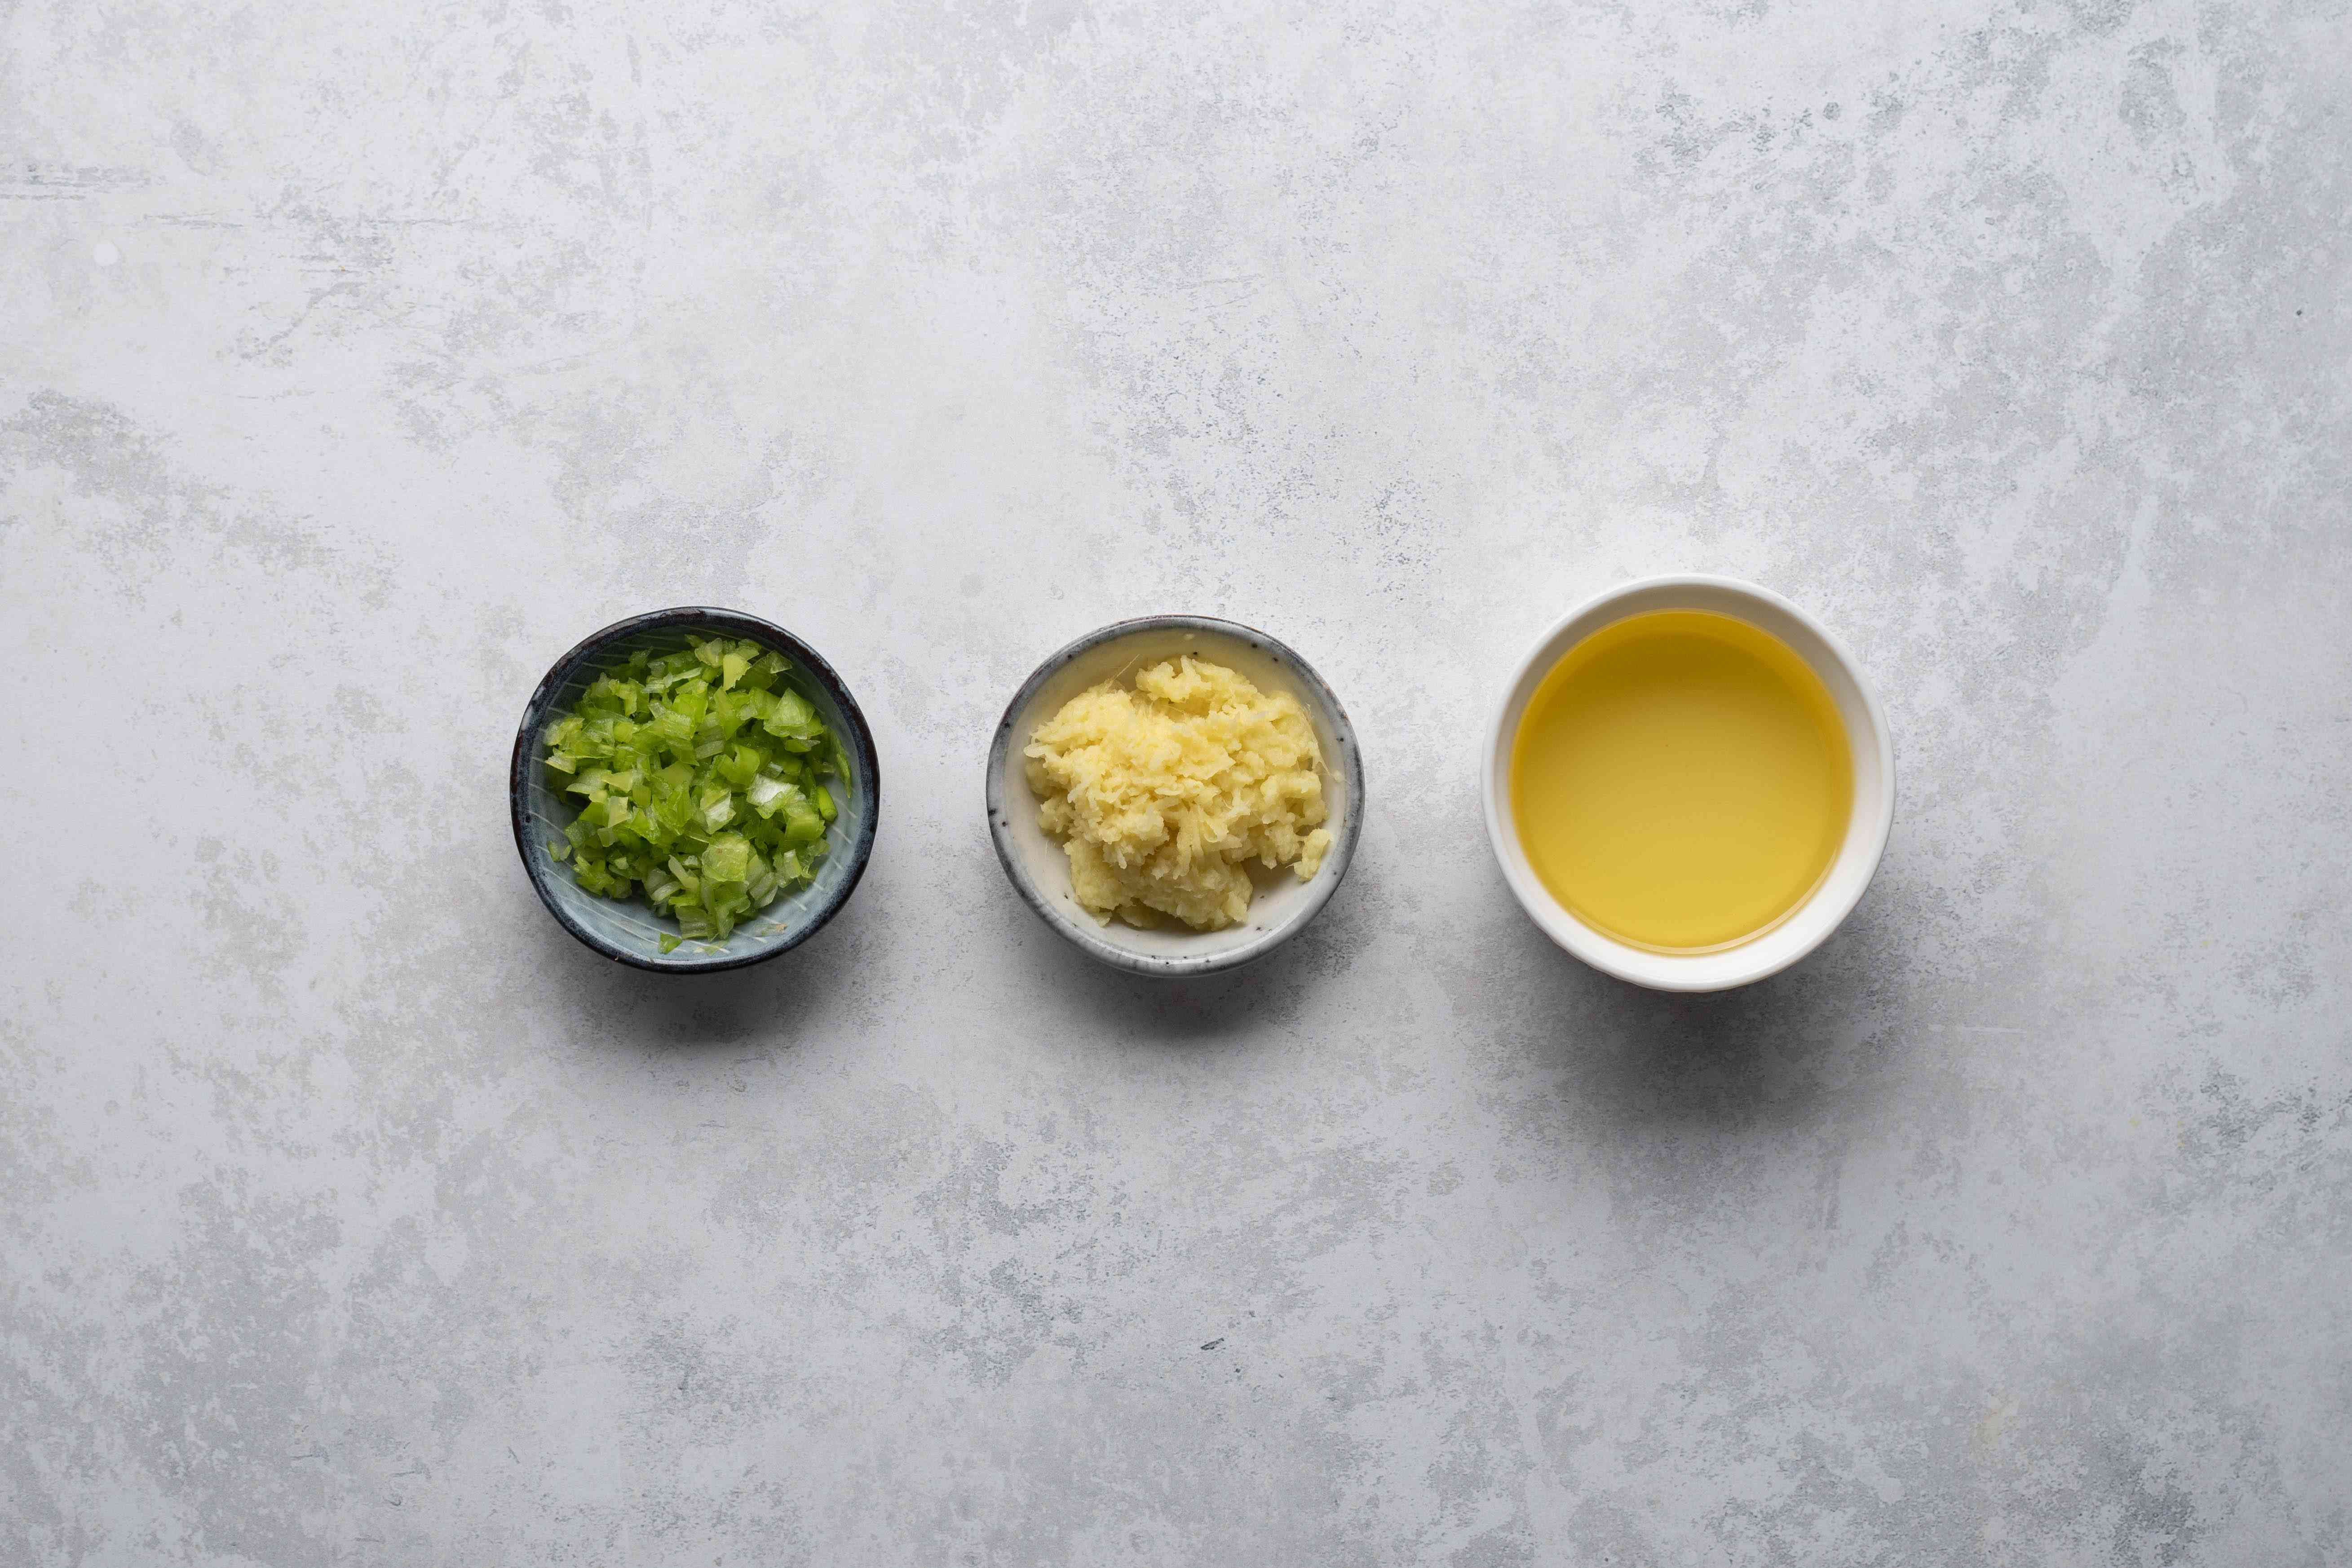 Ingredients for dipping sauce